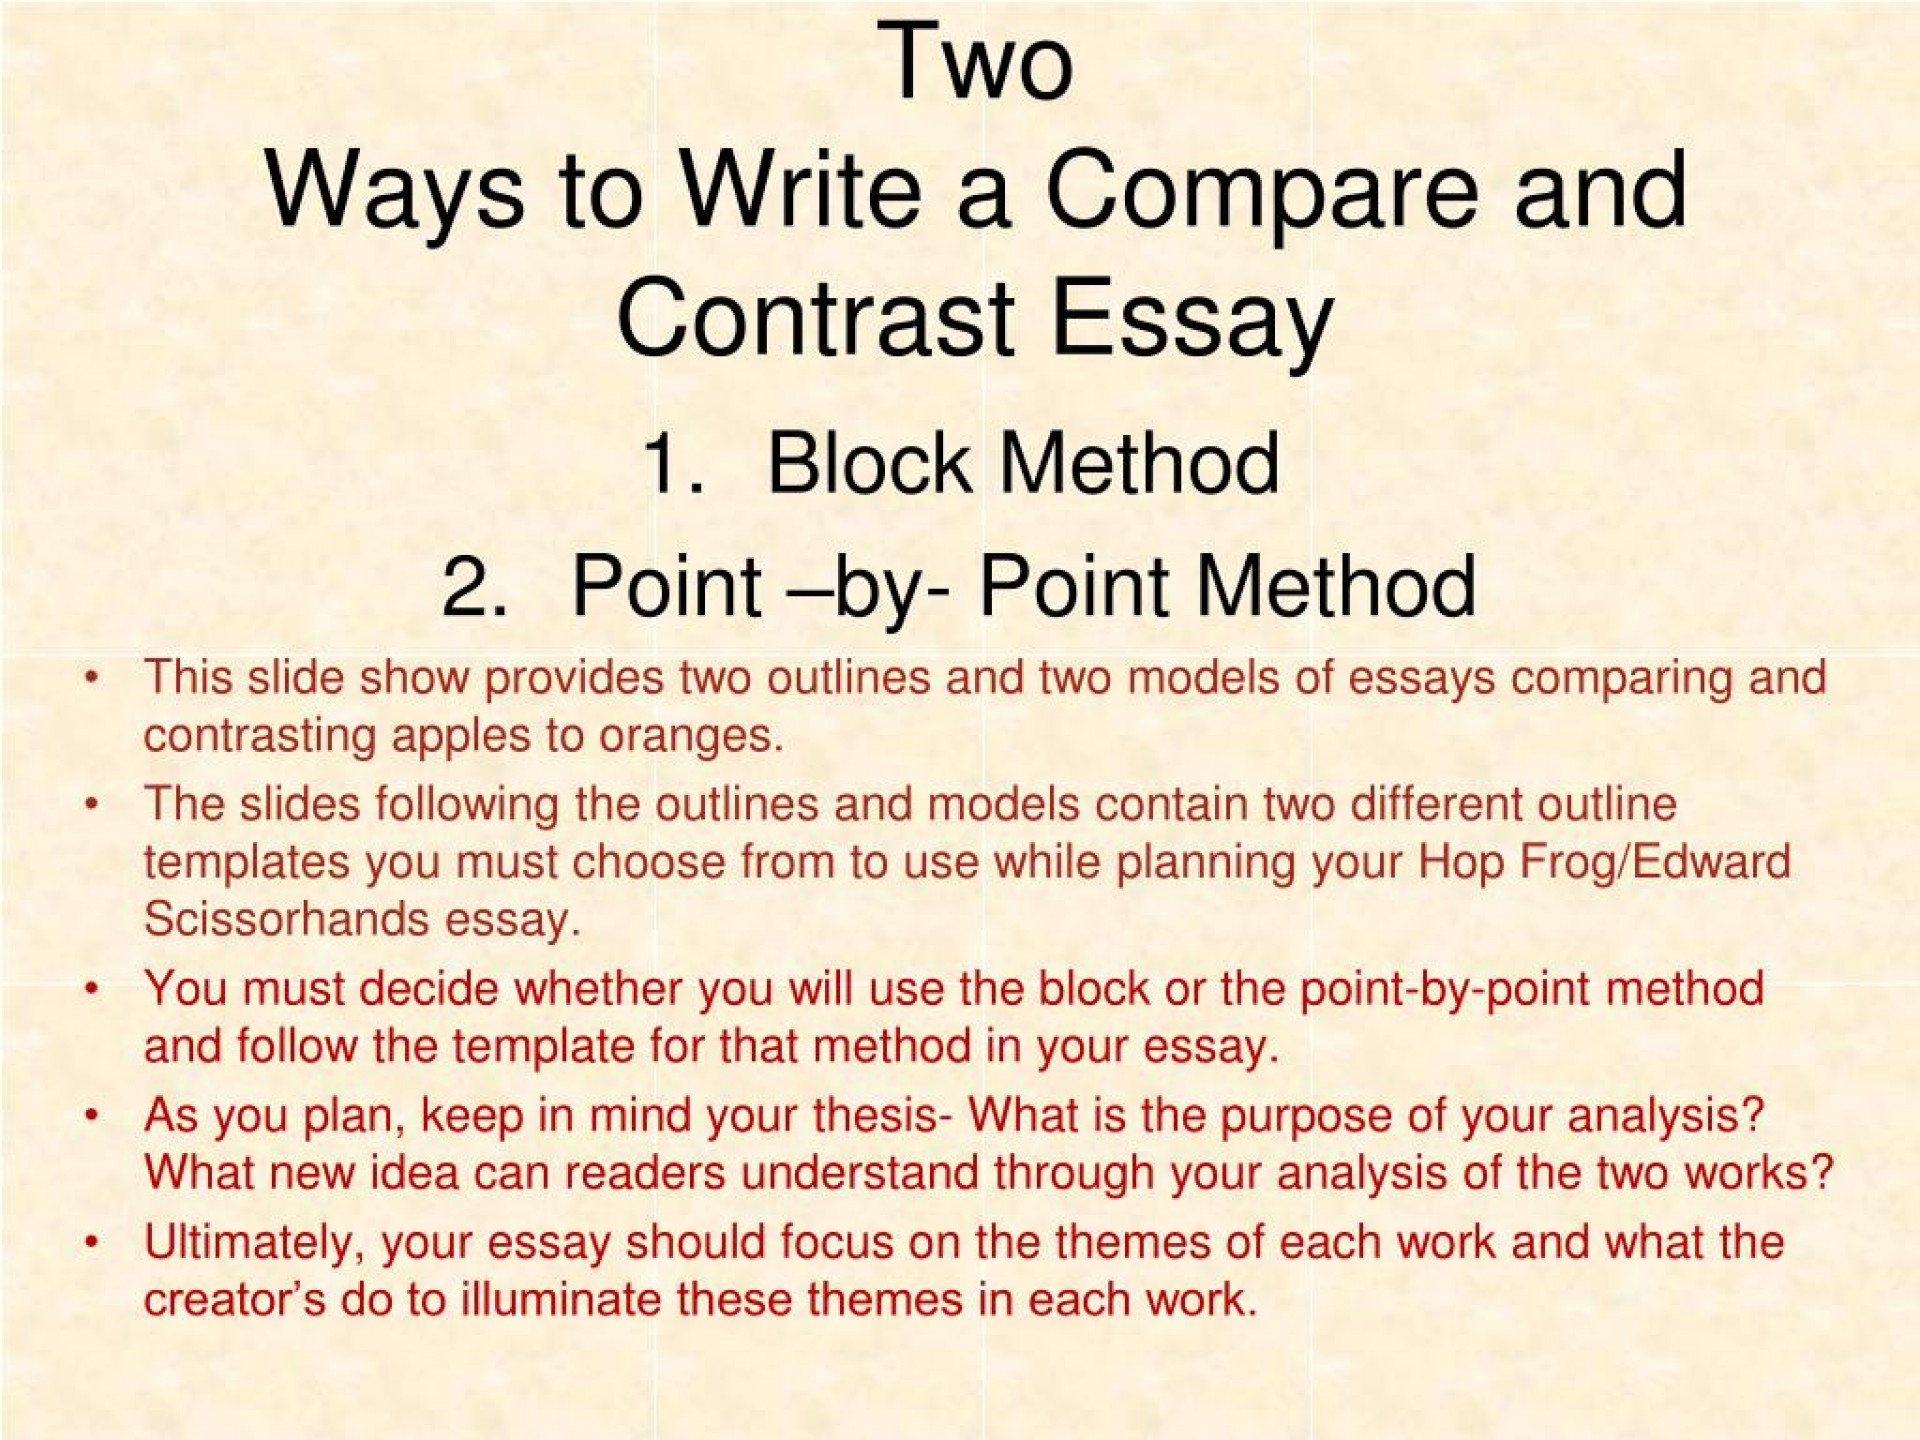 005 Two Ways To Write Compare And Contrast Essay L Example Point Wonderful By Structure Outline Introduction 1920